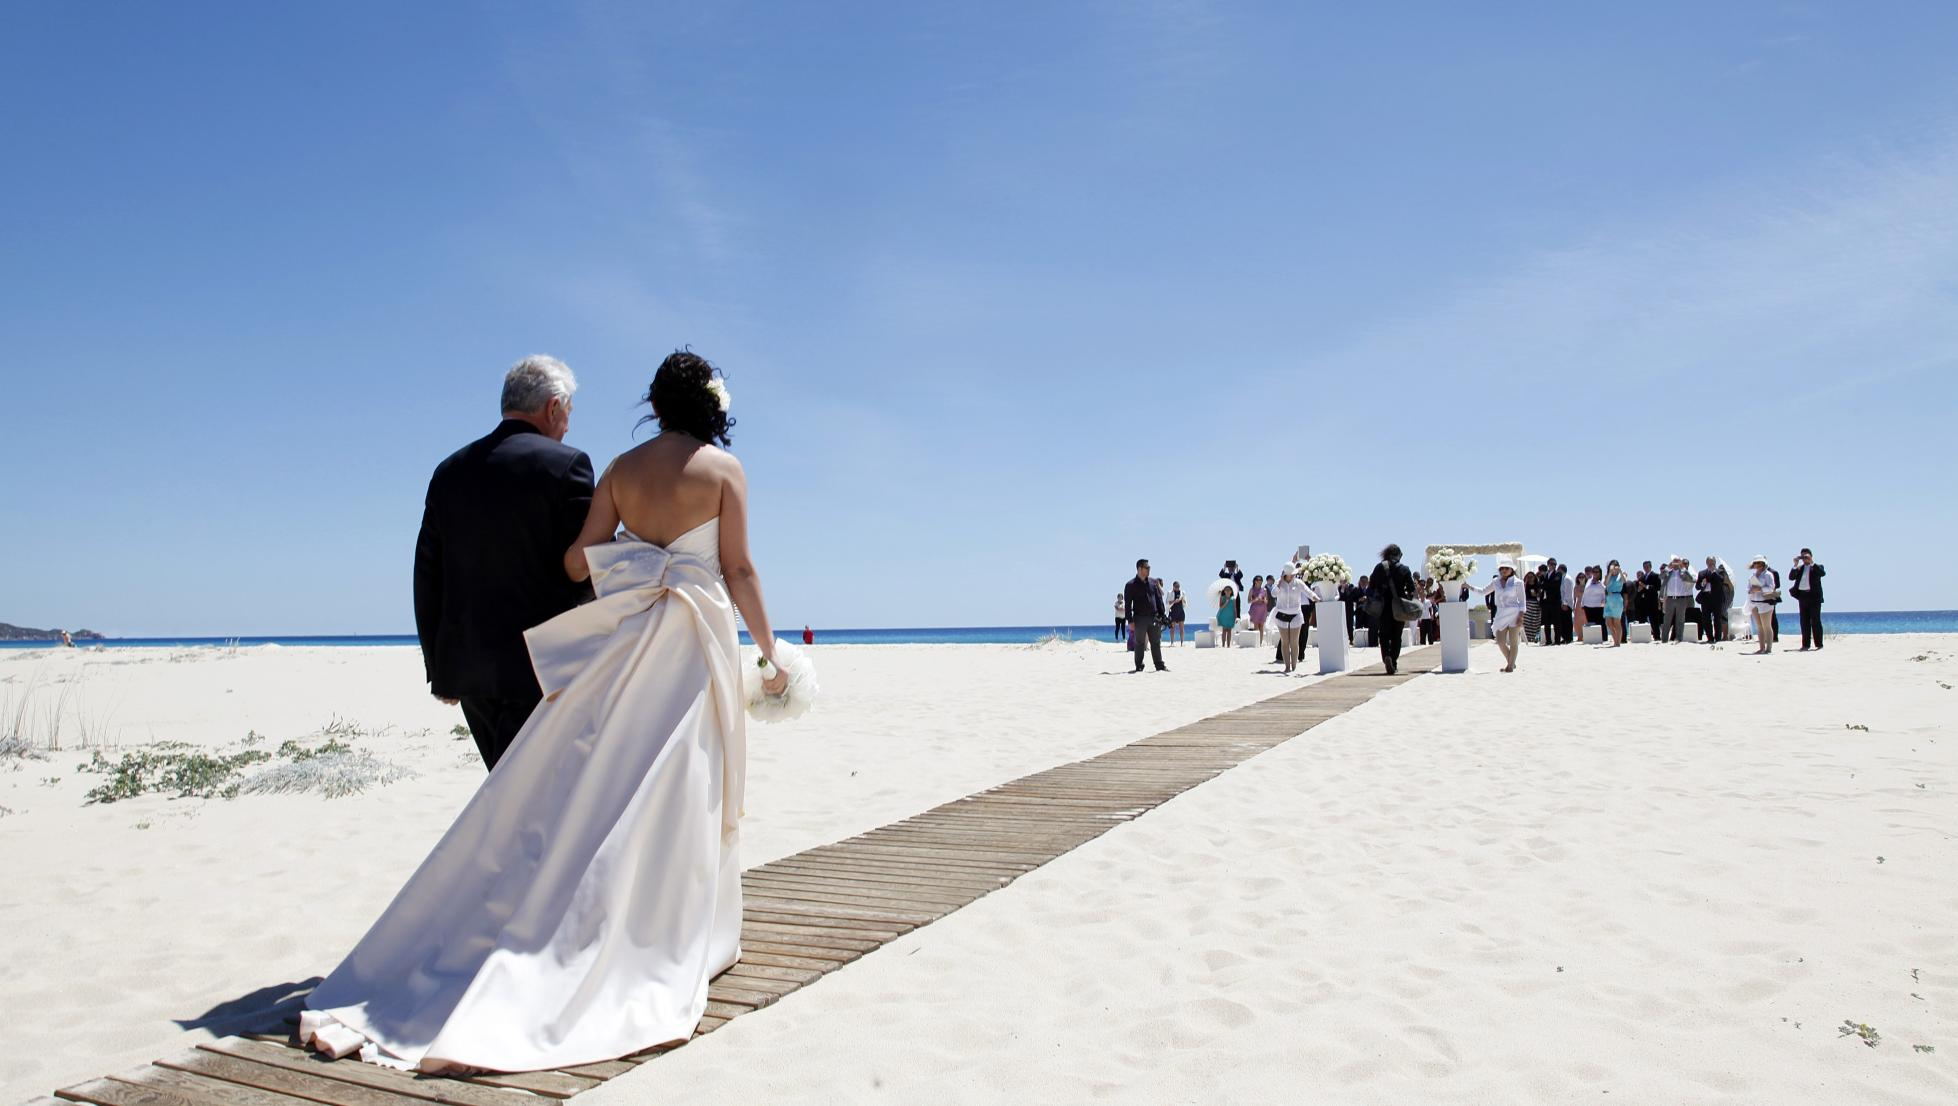 Wedding in Sardegna - Costa Rei - Muravera